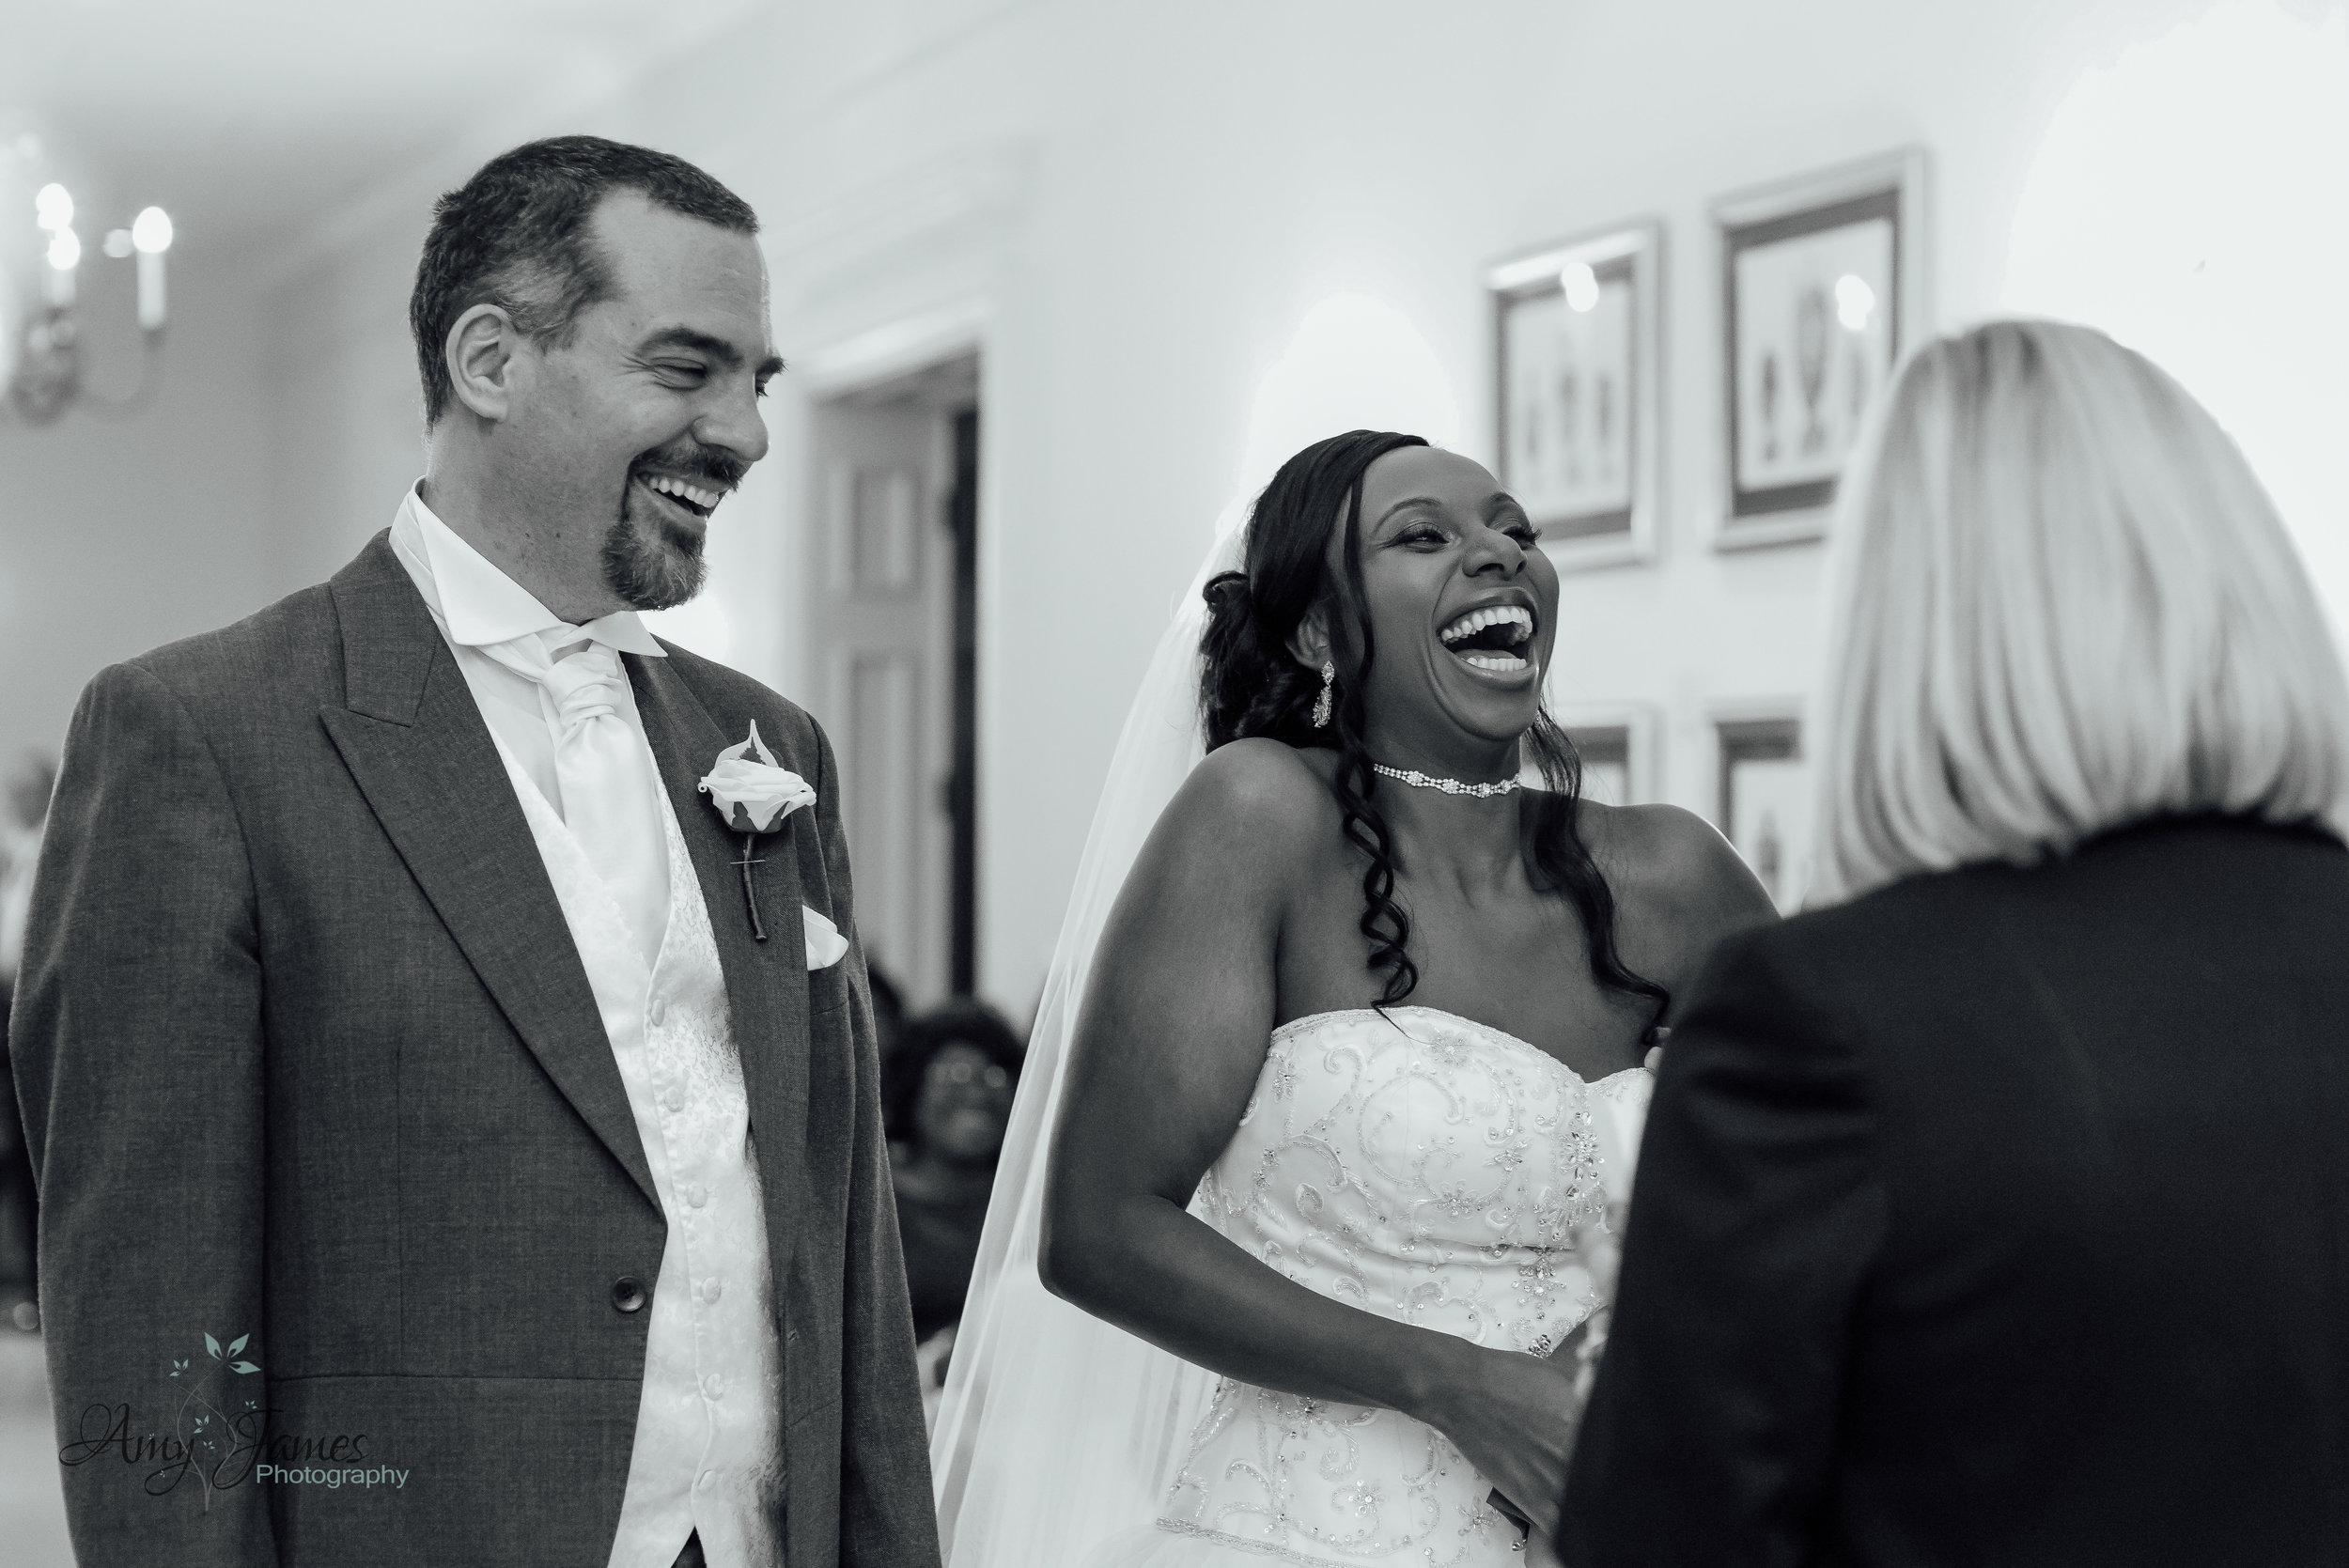 wedding at four seasons hotel Hampshire by Amy James Photography - documentary wedding photographer for Hampshire and Surrey